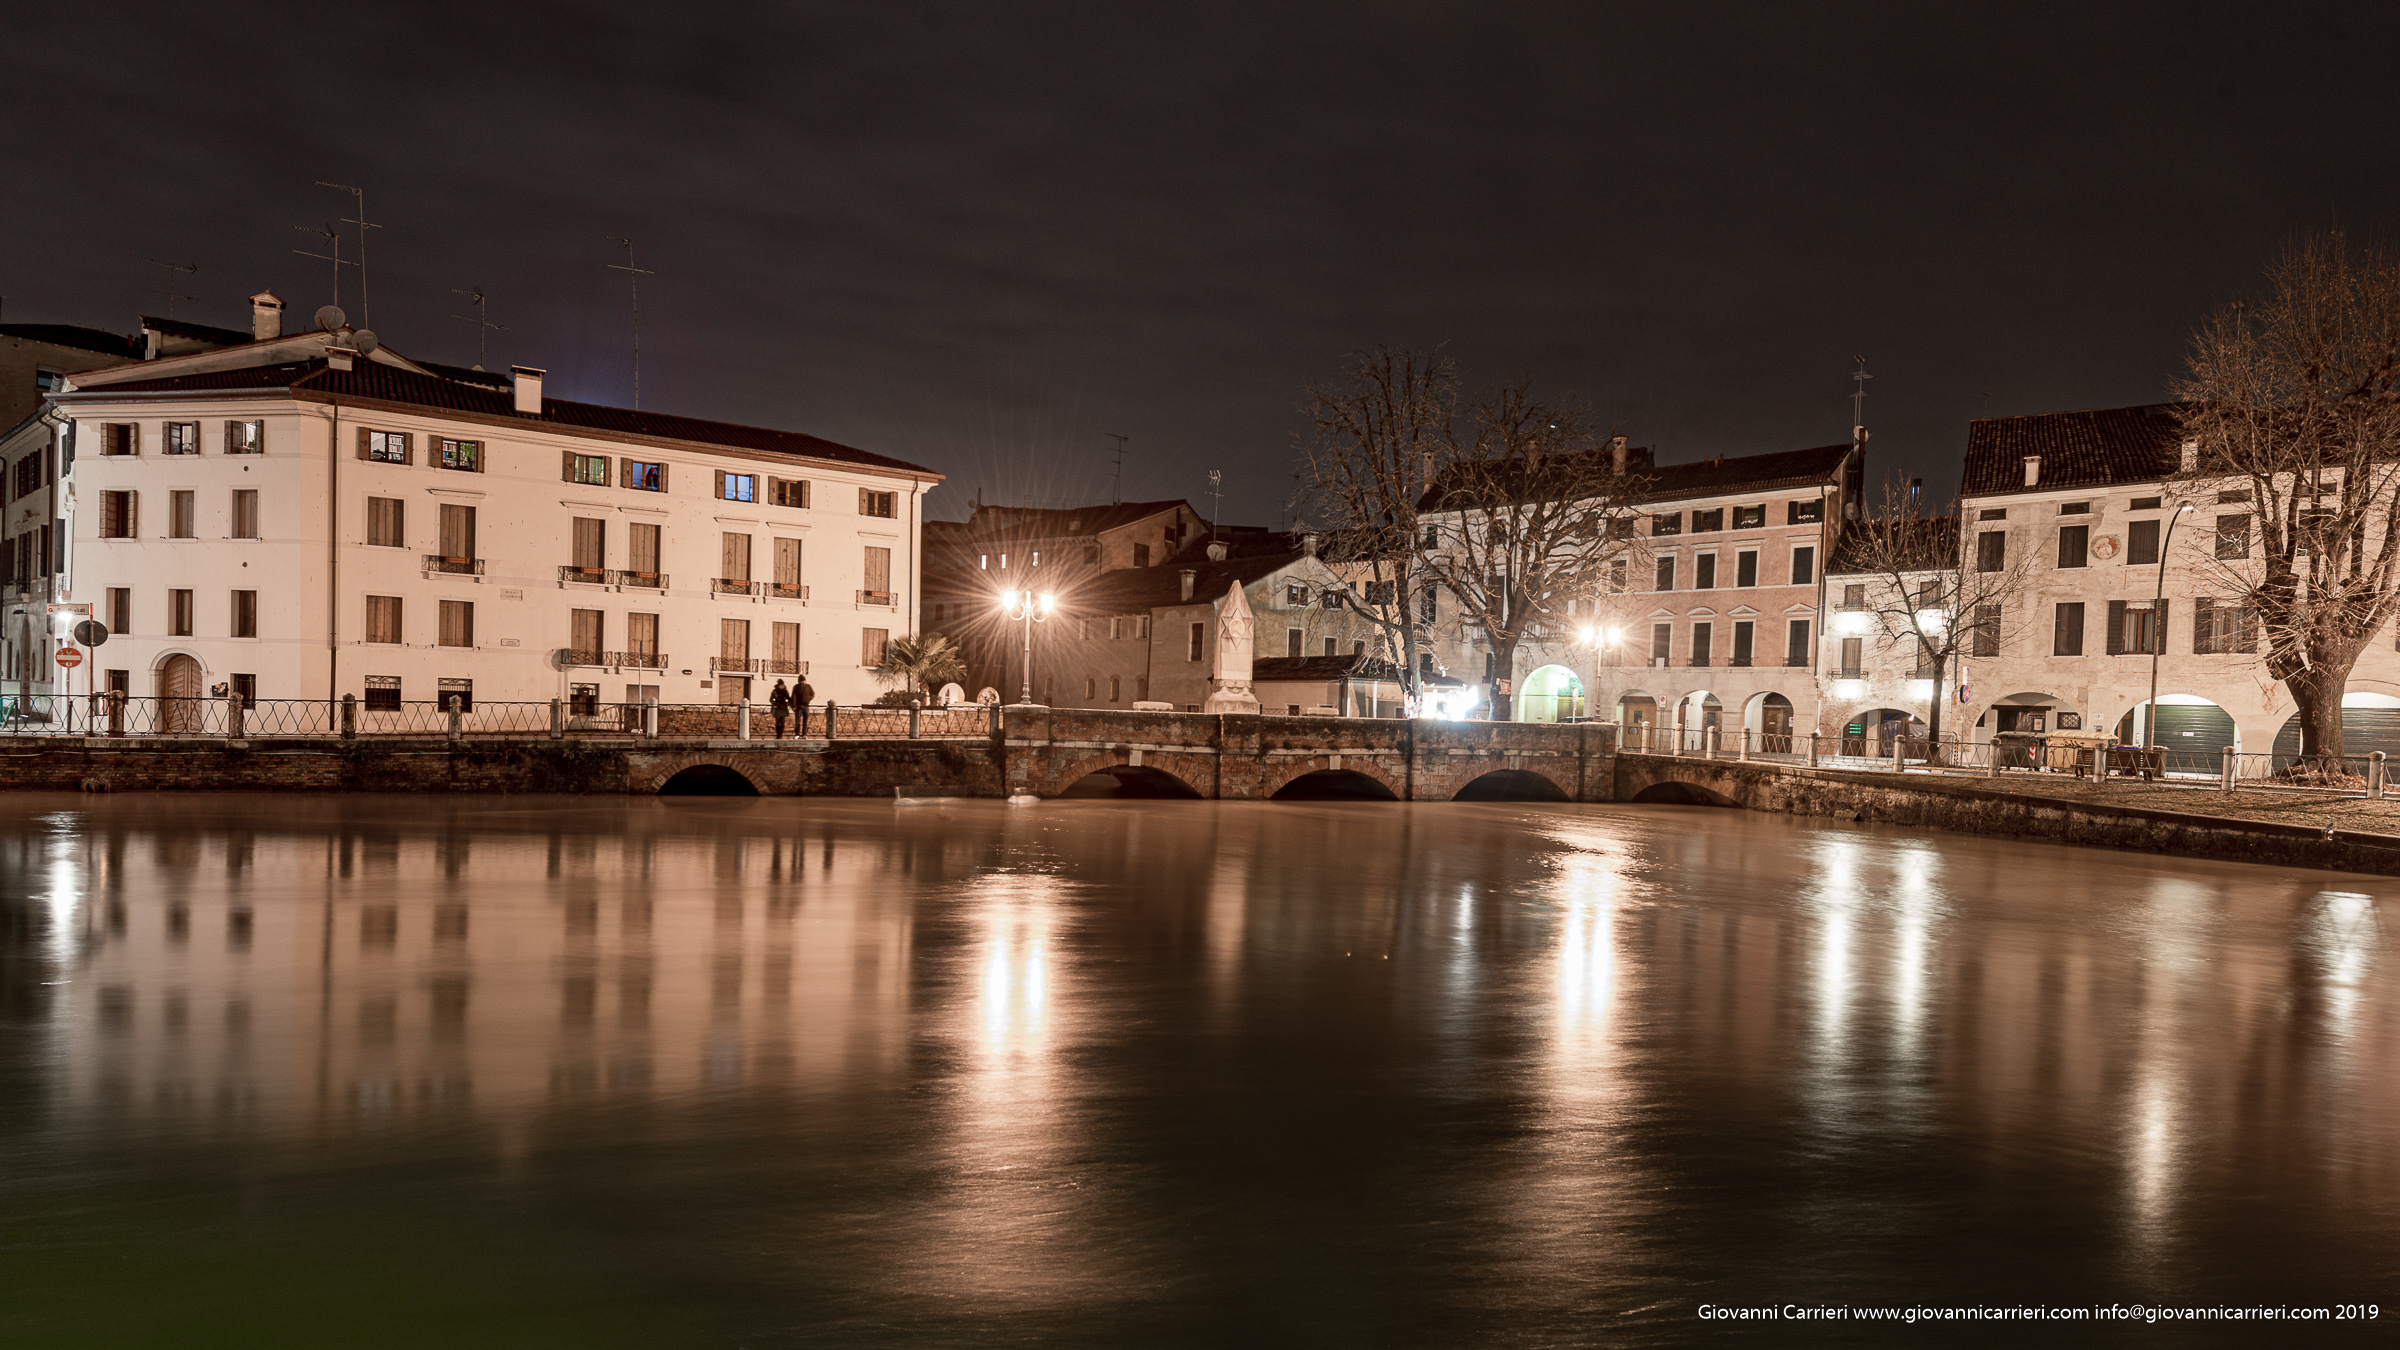 Treviso and the Sile River